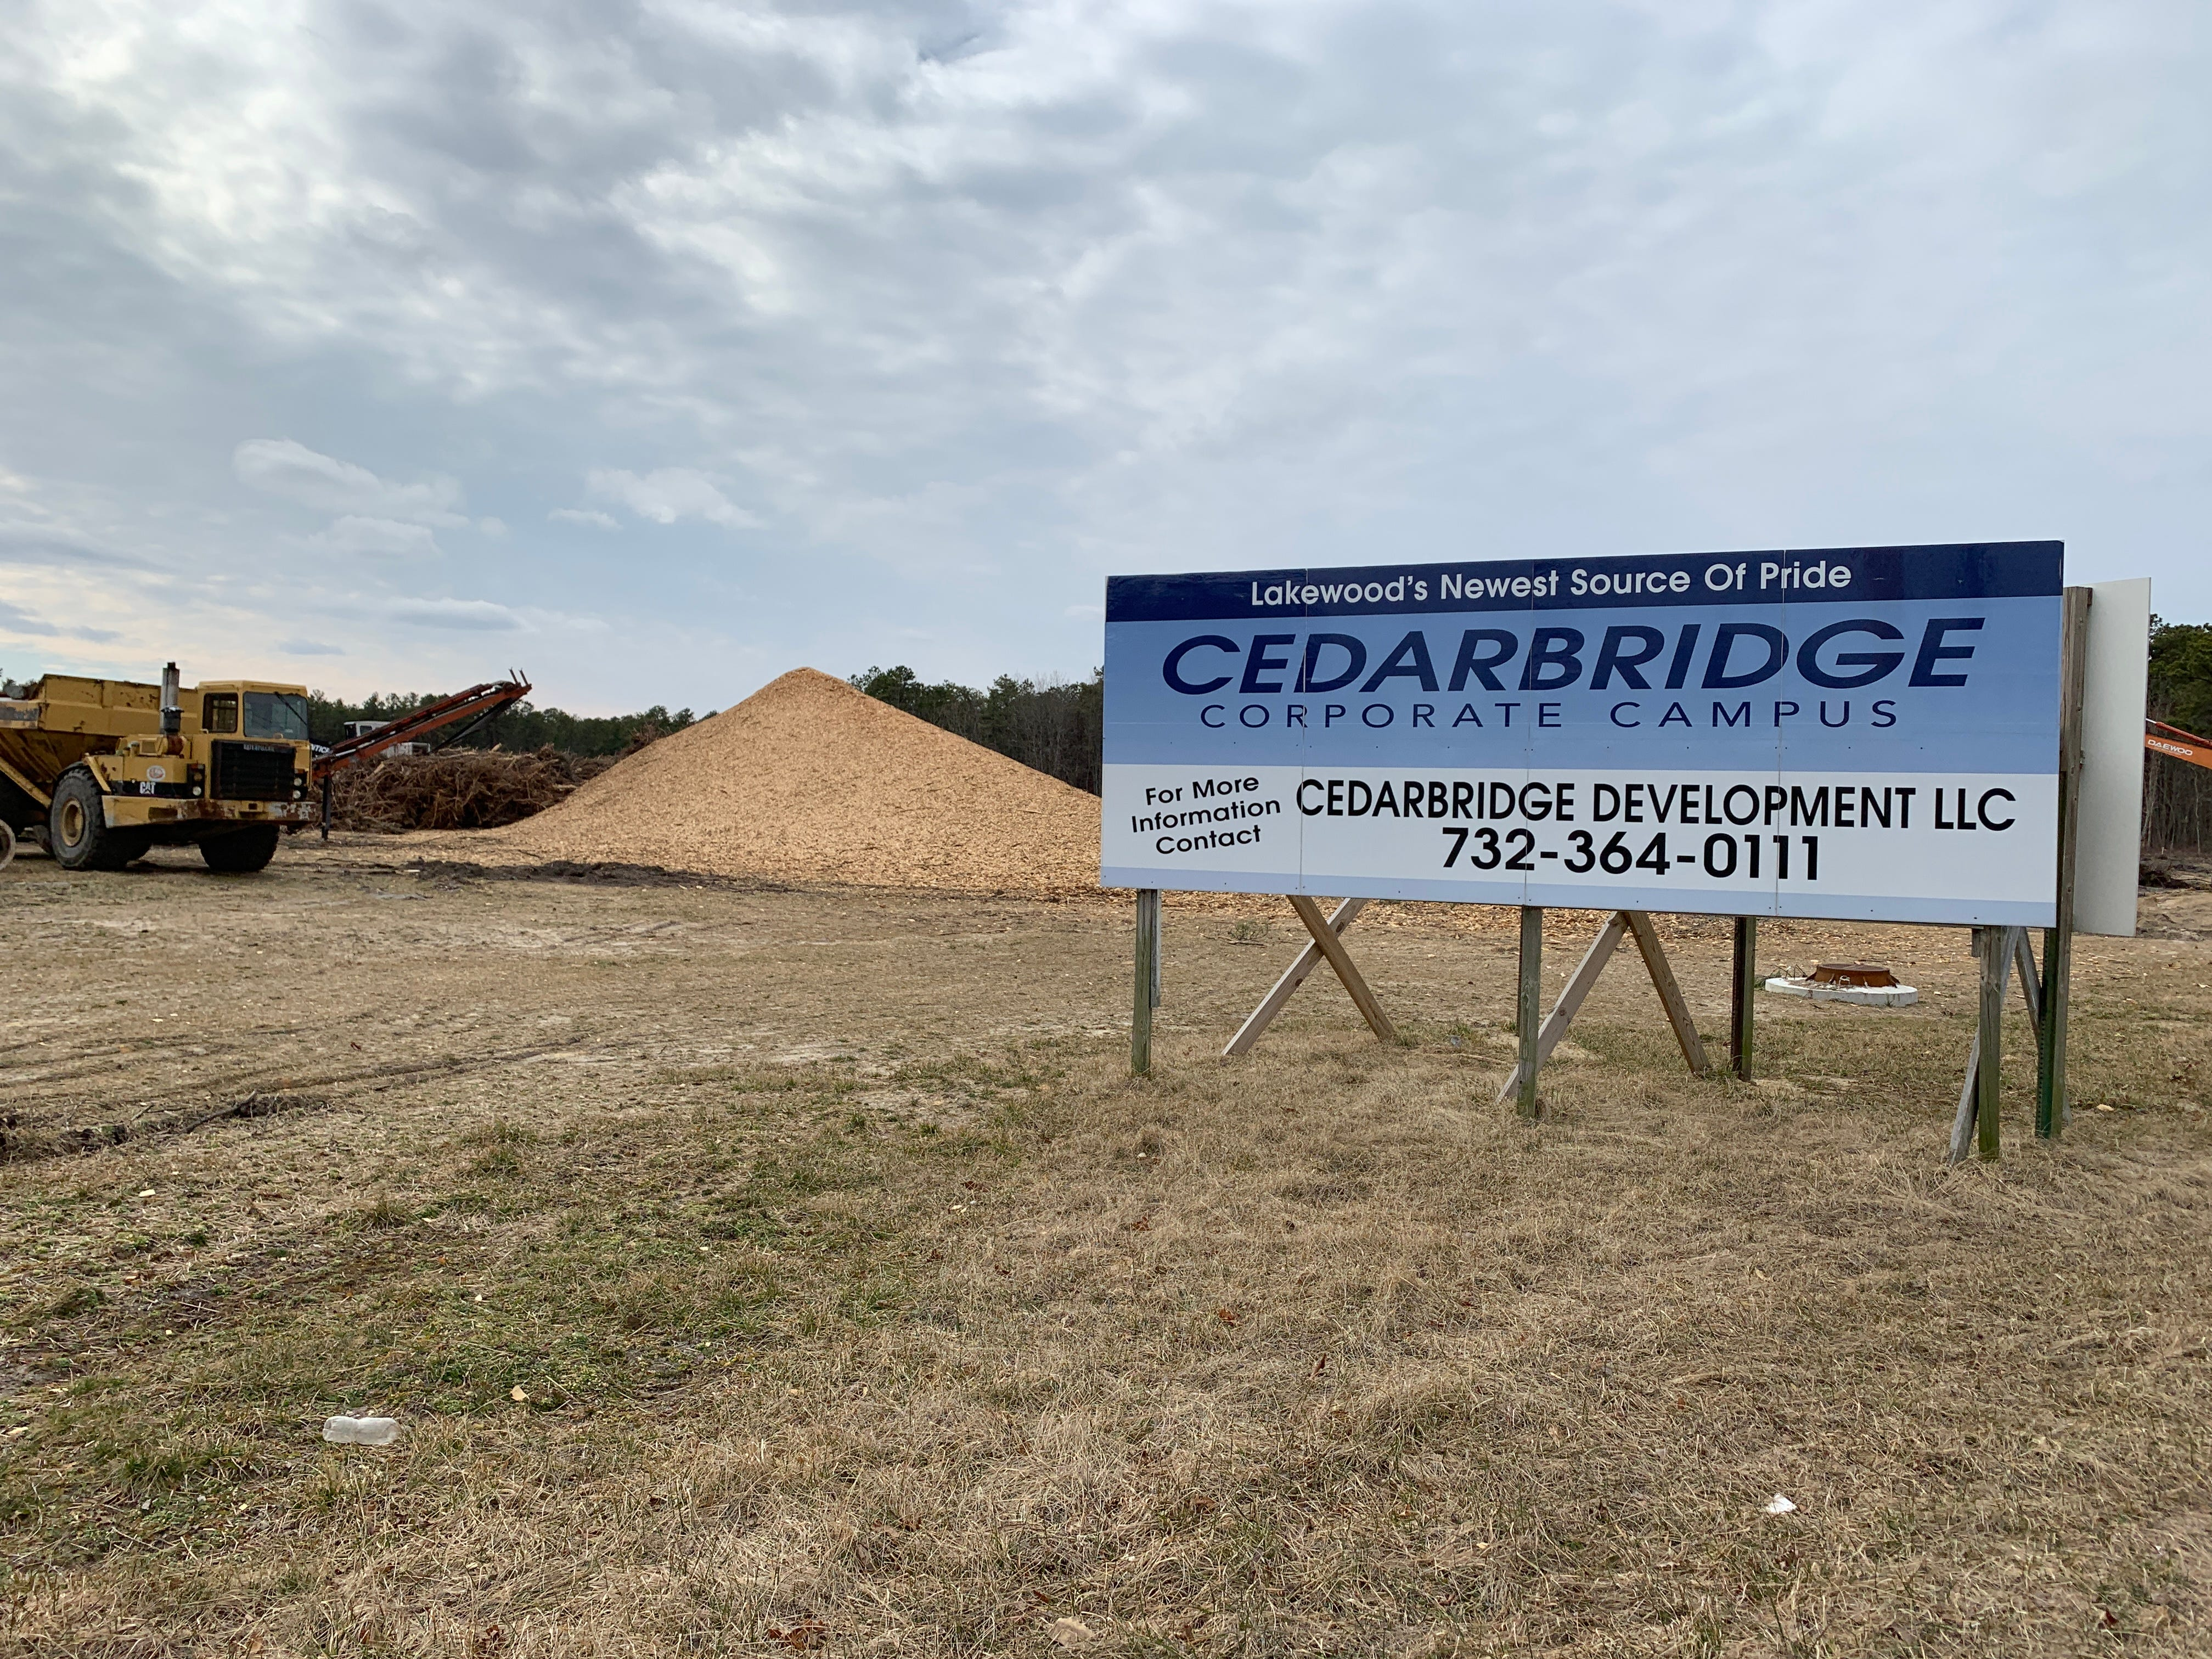 Office buildings and a bank branch are planned for the corner of Avenue of the States and Cedar Bridge Avenue in Lakewood.